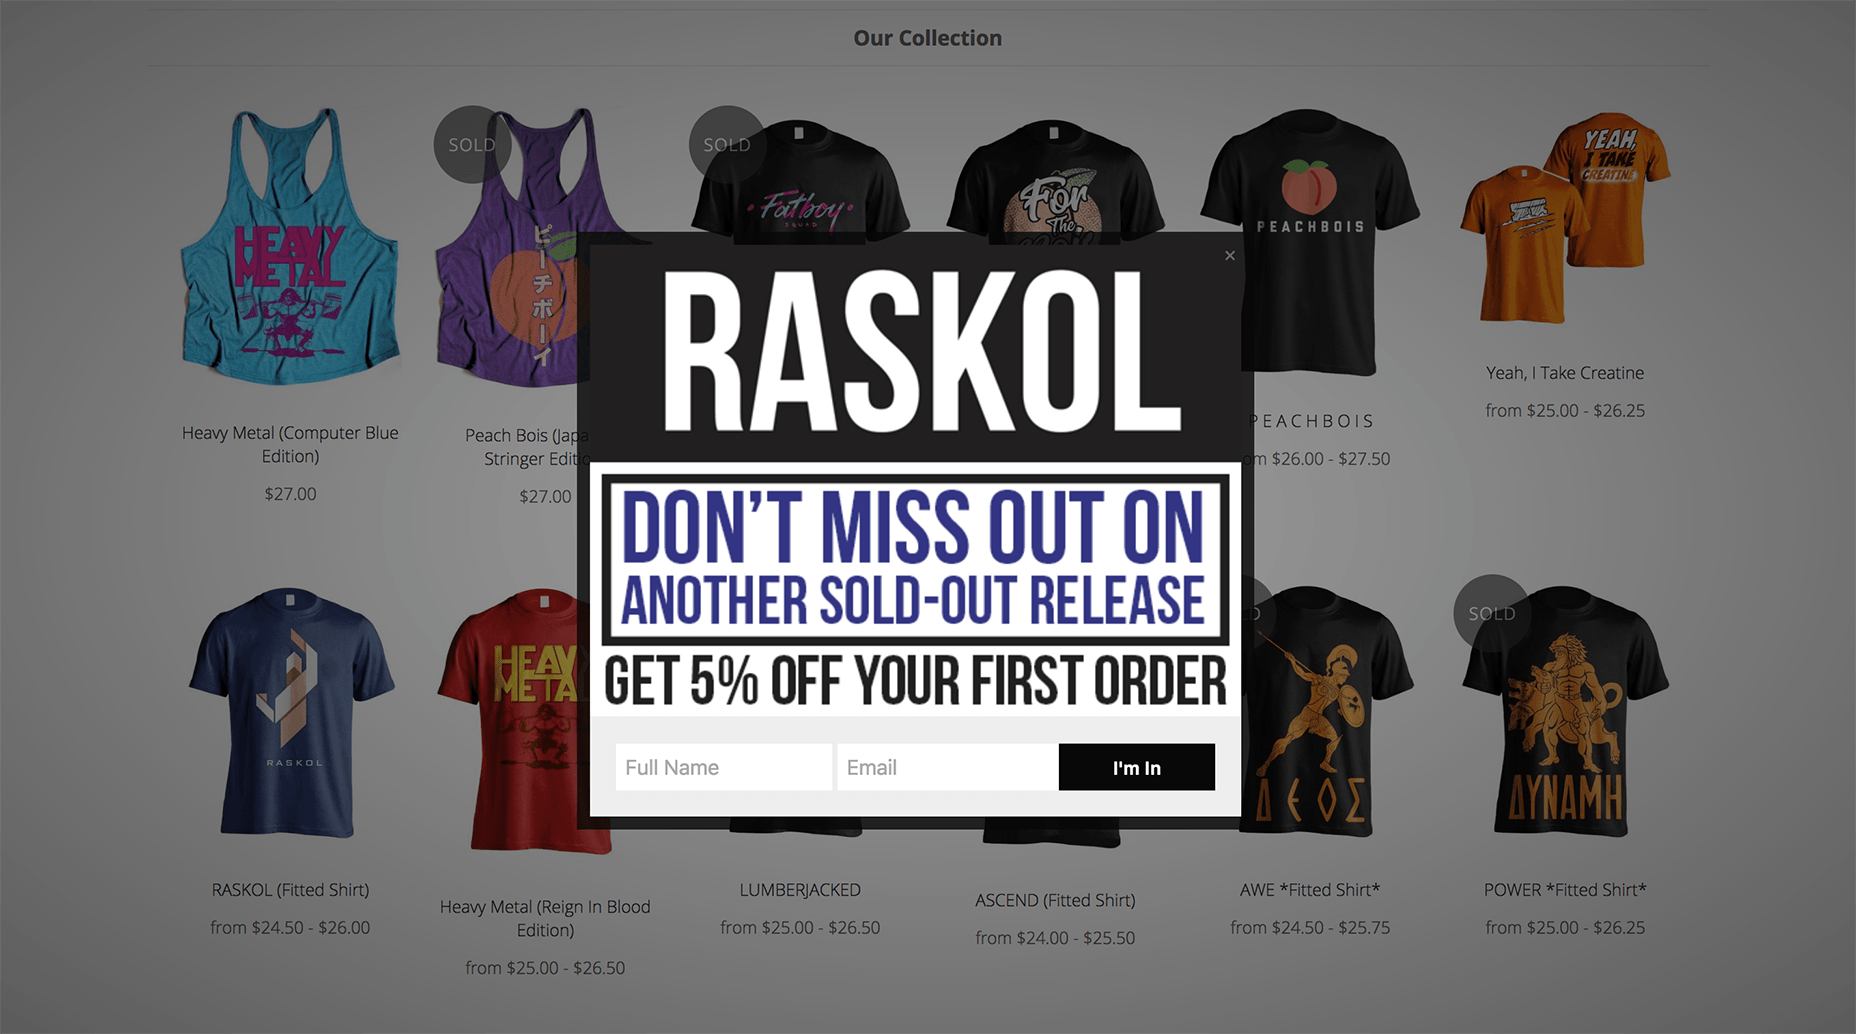 raskol-apparel-opt-in